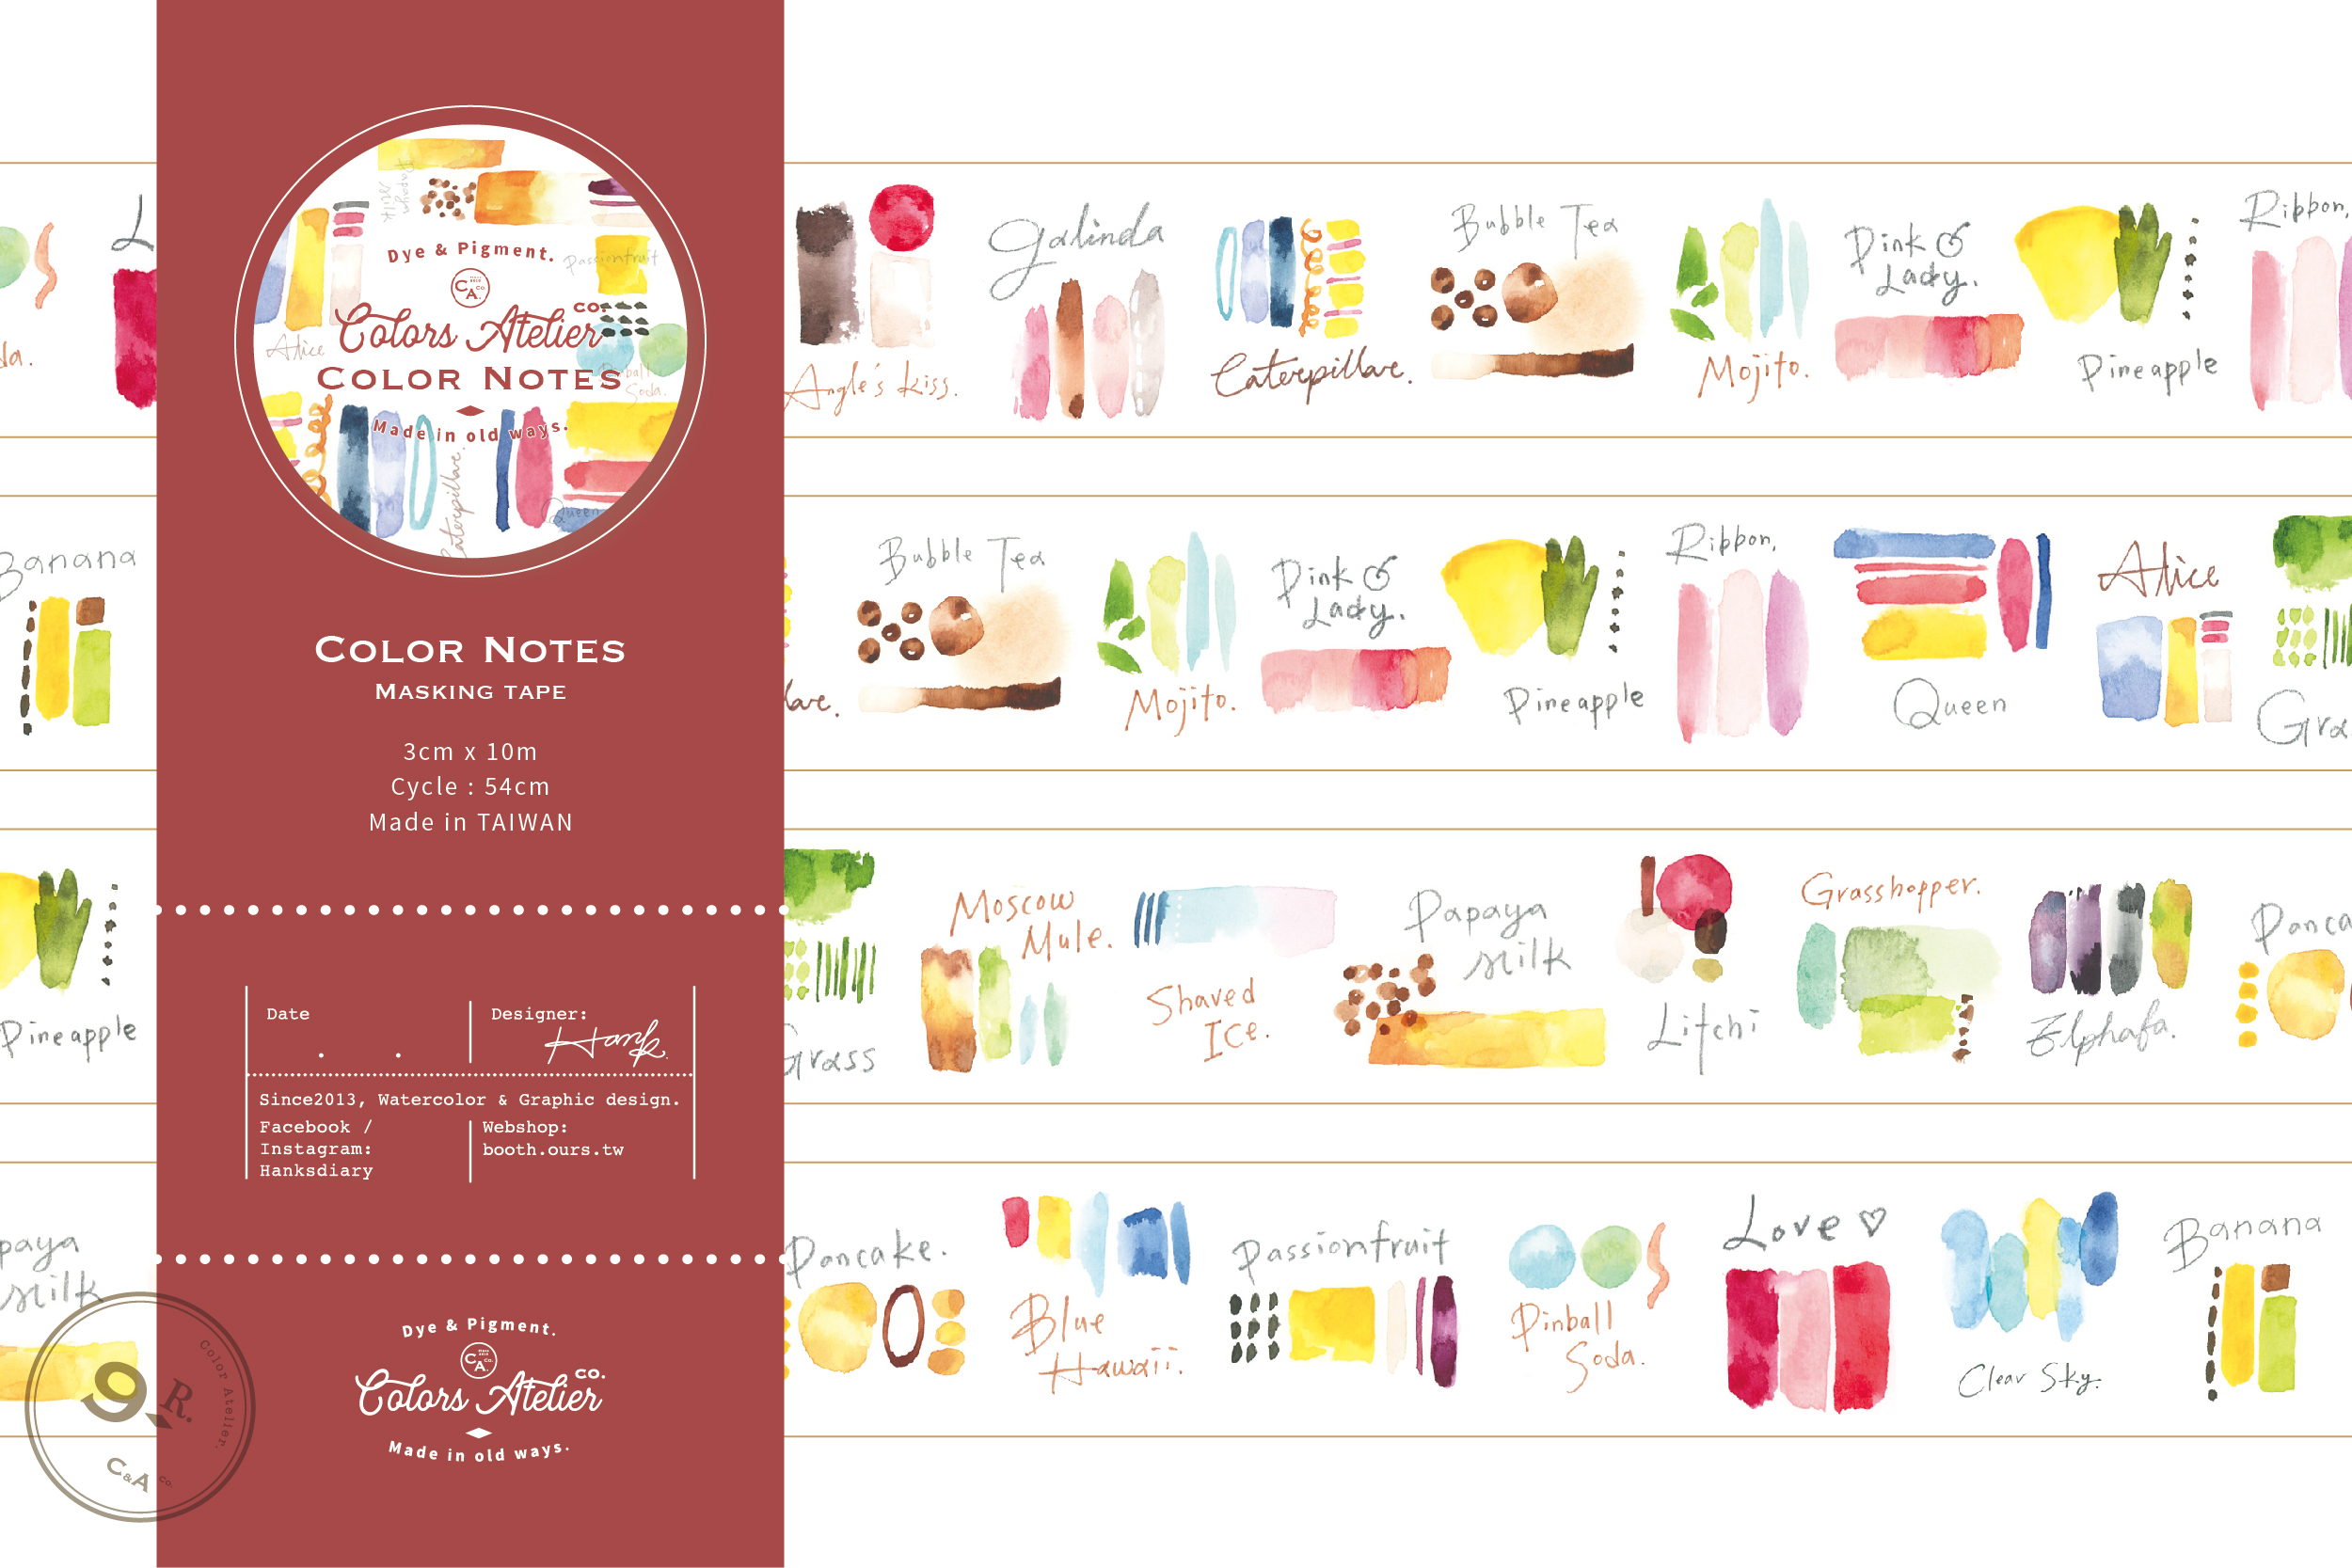 Color Atelier - Color Notes 色彩筆記